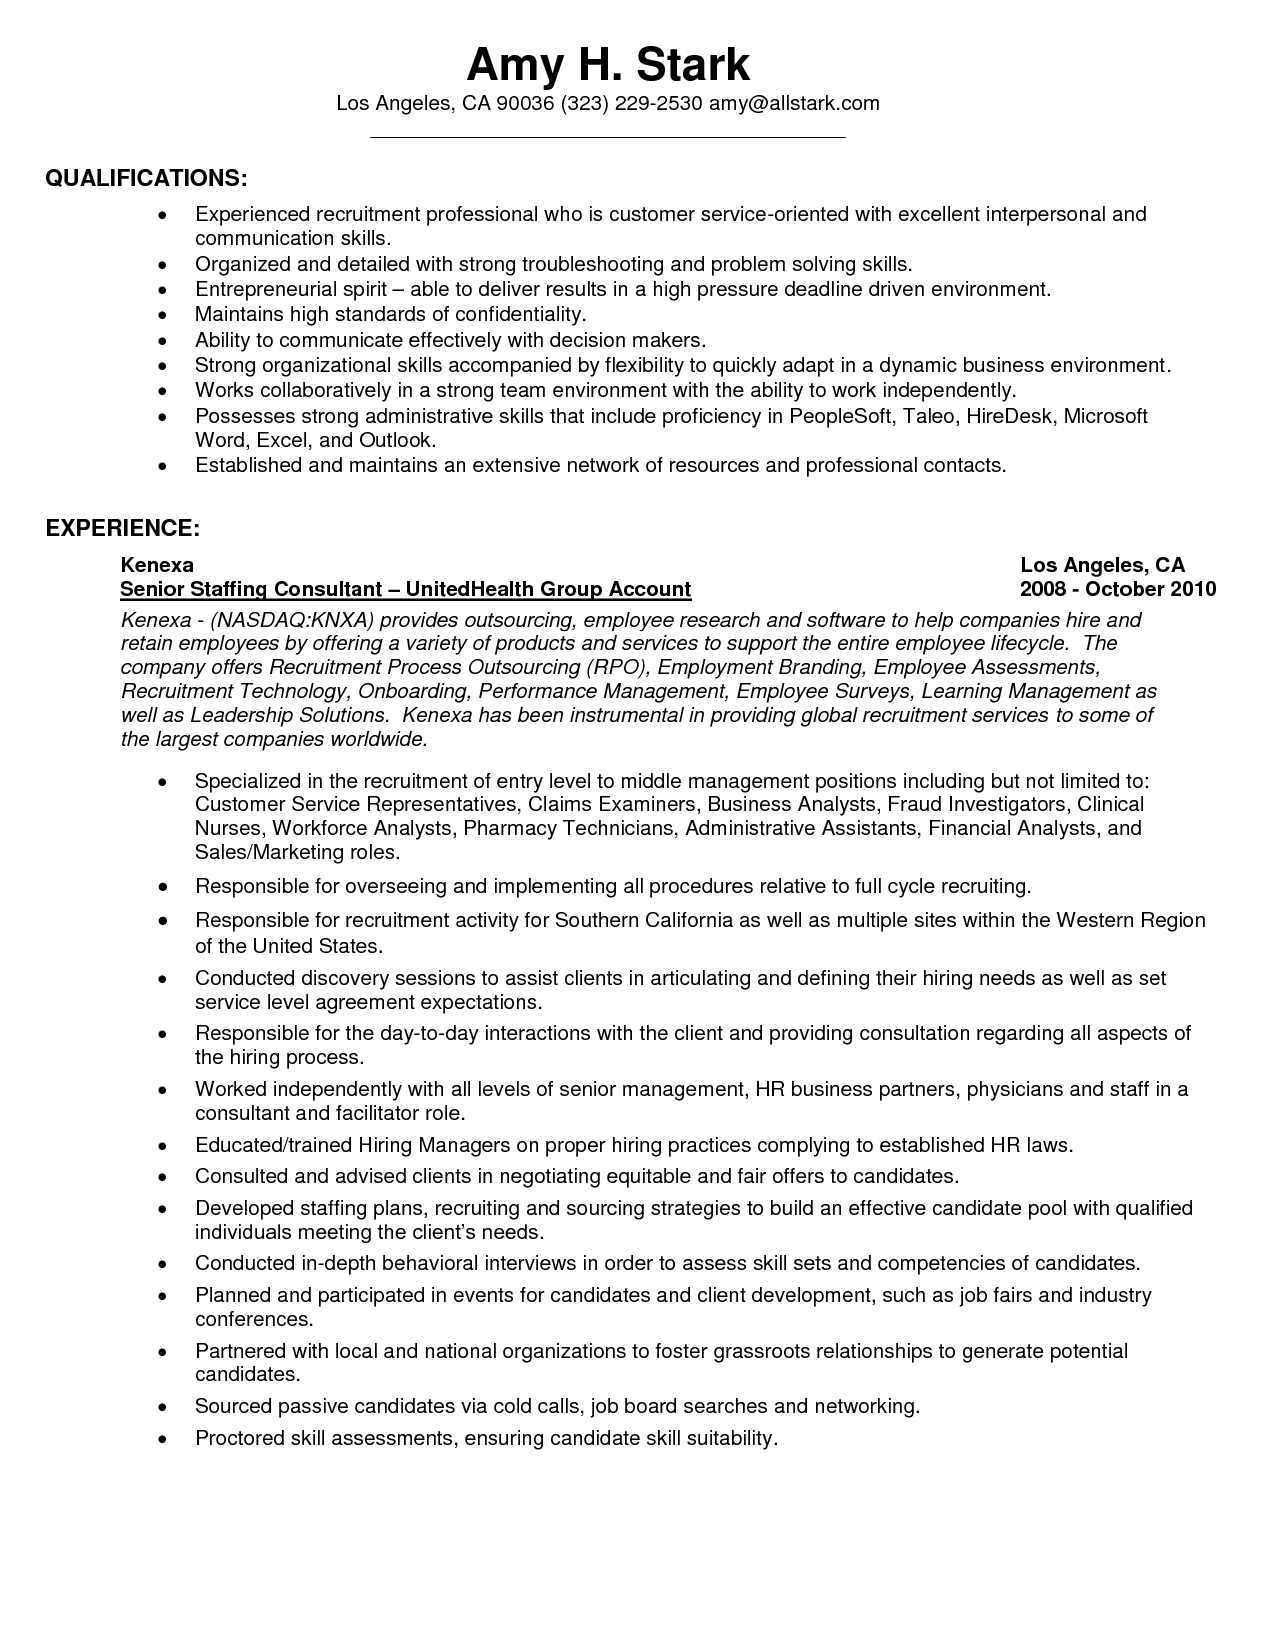 kfc jobs food and restaurant resume sample samplebusinessresume ...